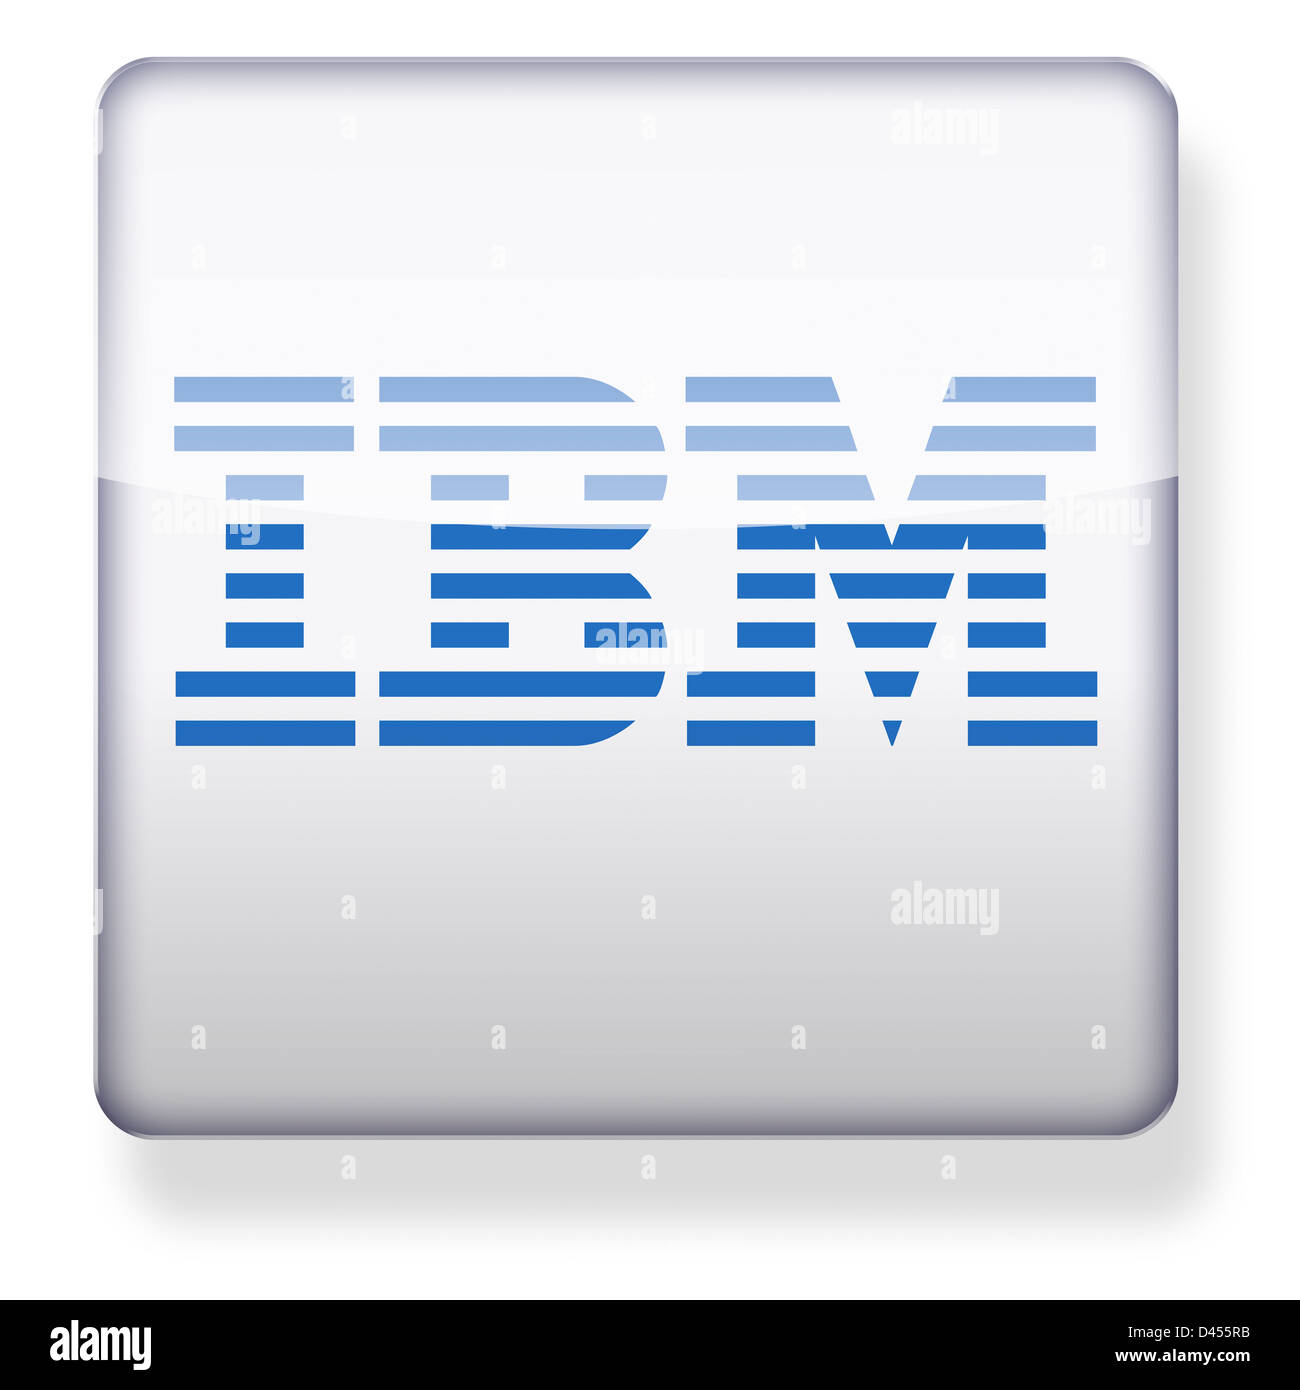 IBM logo as an app icon. Clipping path included. - Stock Image